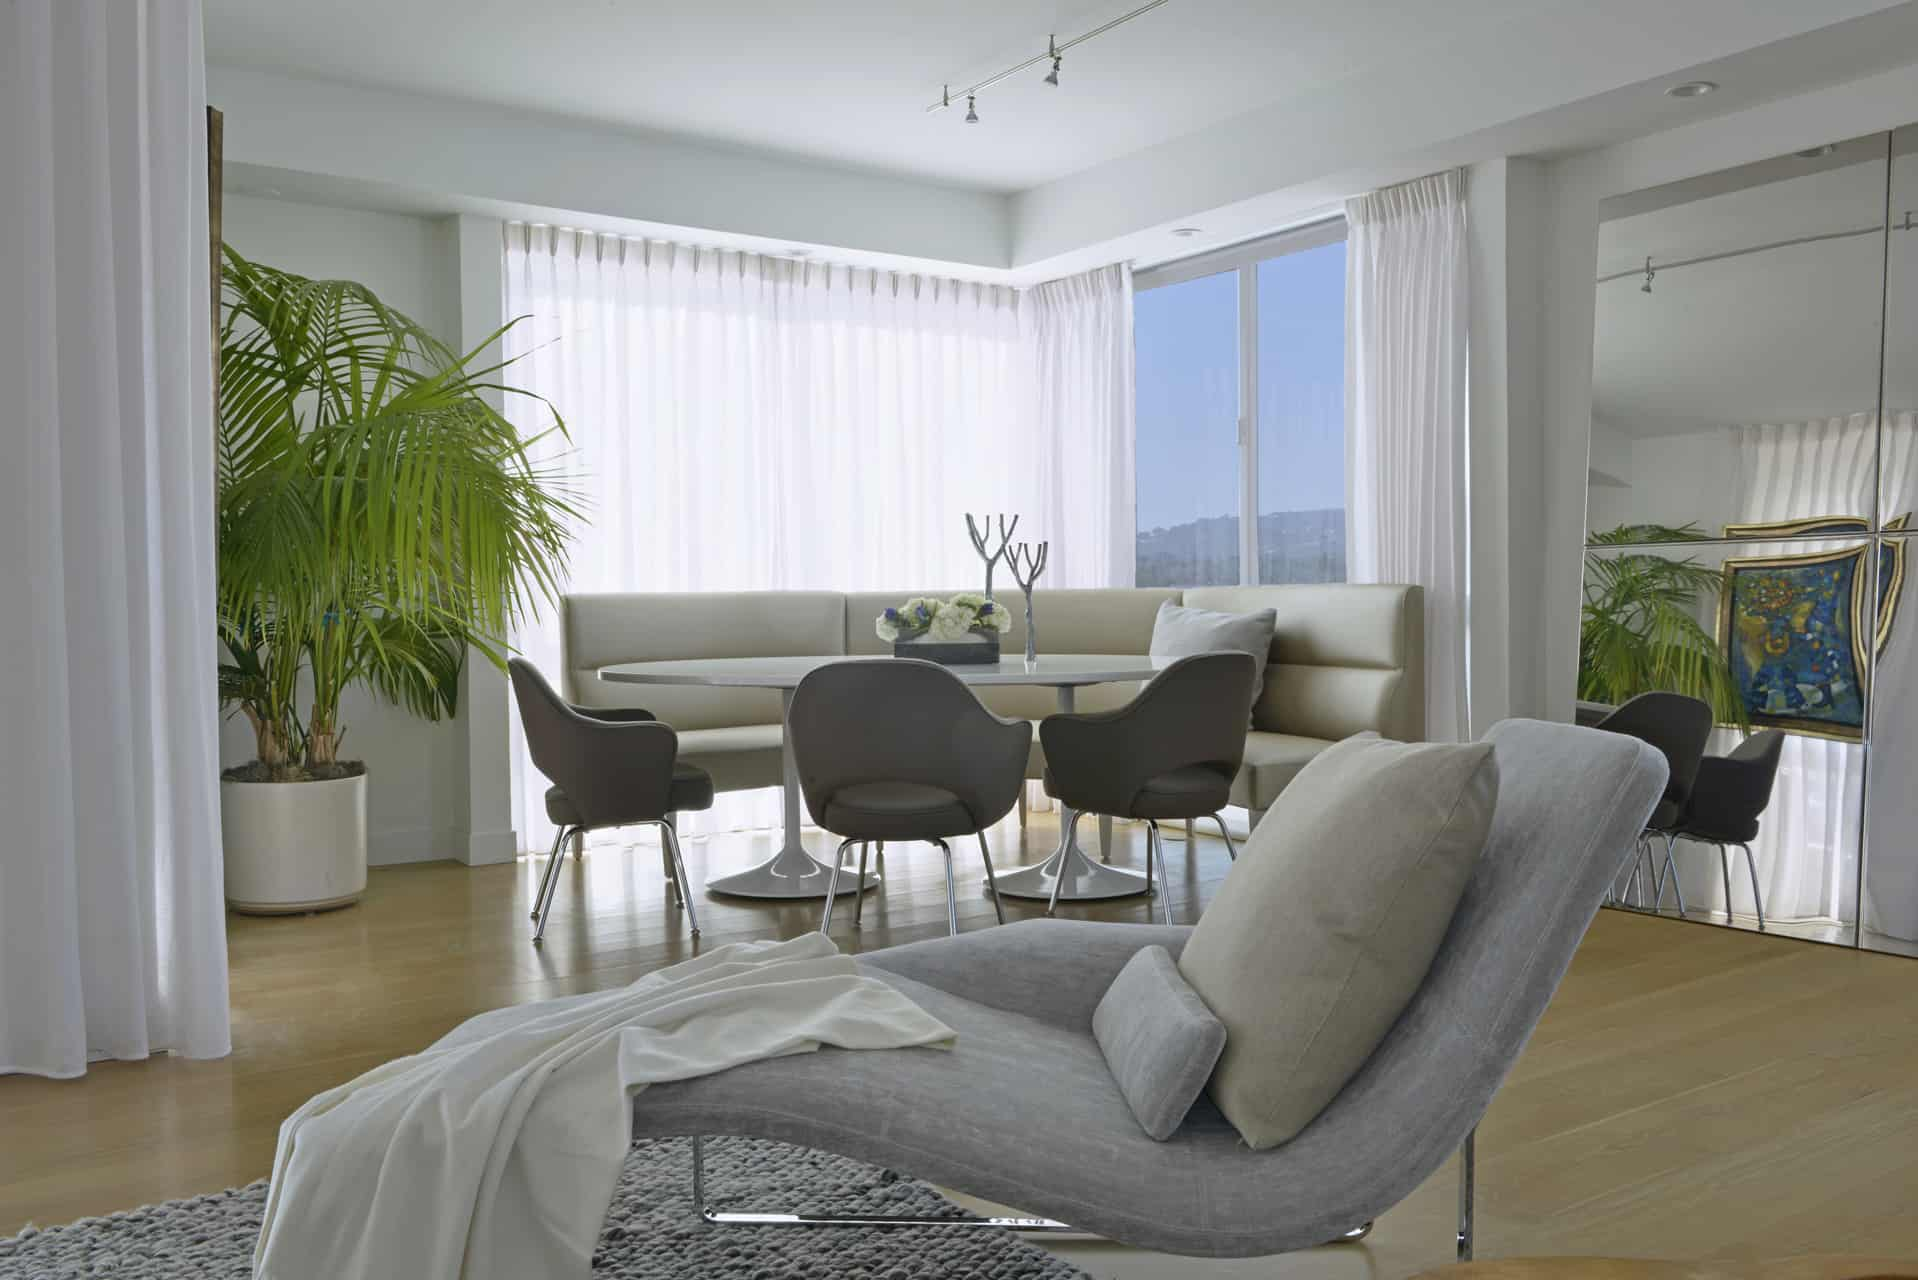 Gray Interior Design Residential Interior Design From Nyc Worldwide Vicente Wolf